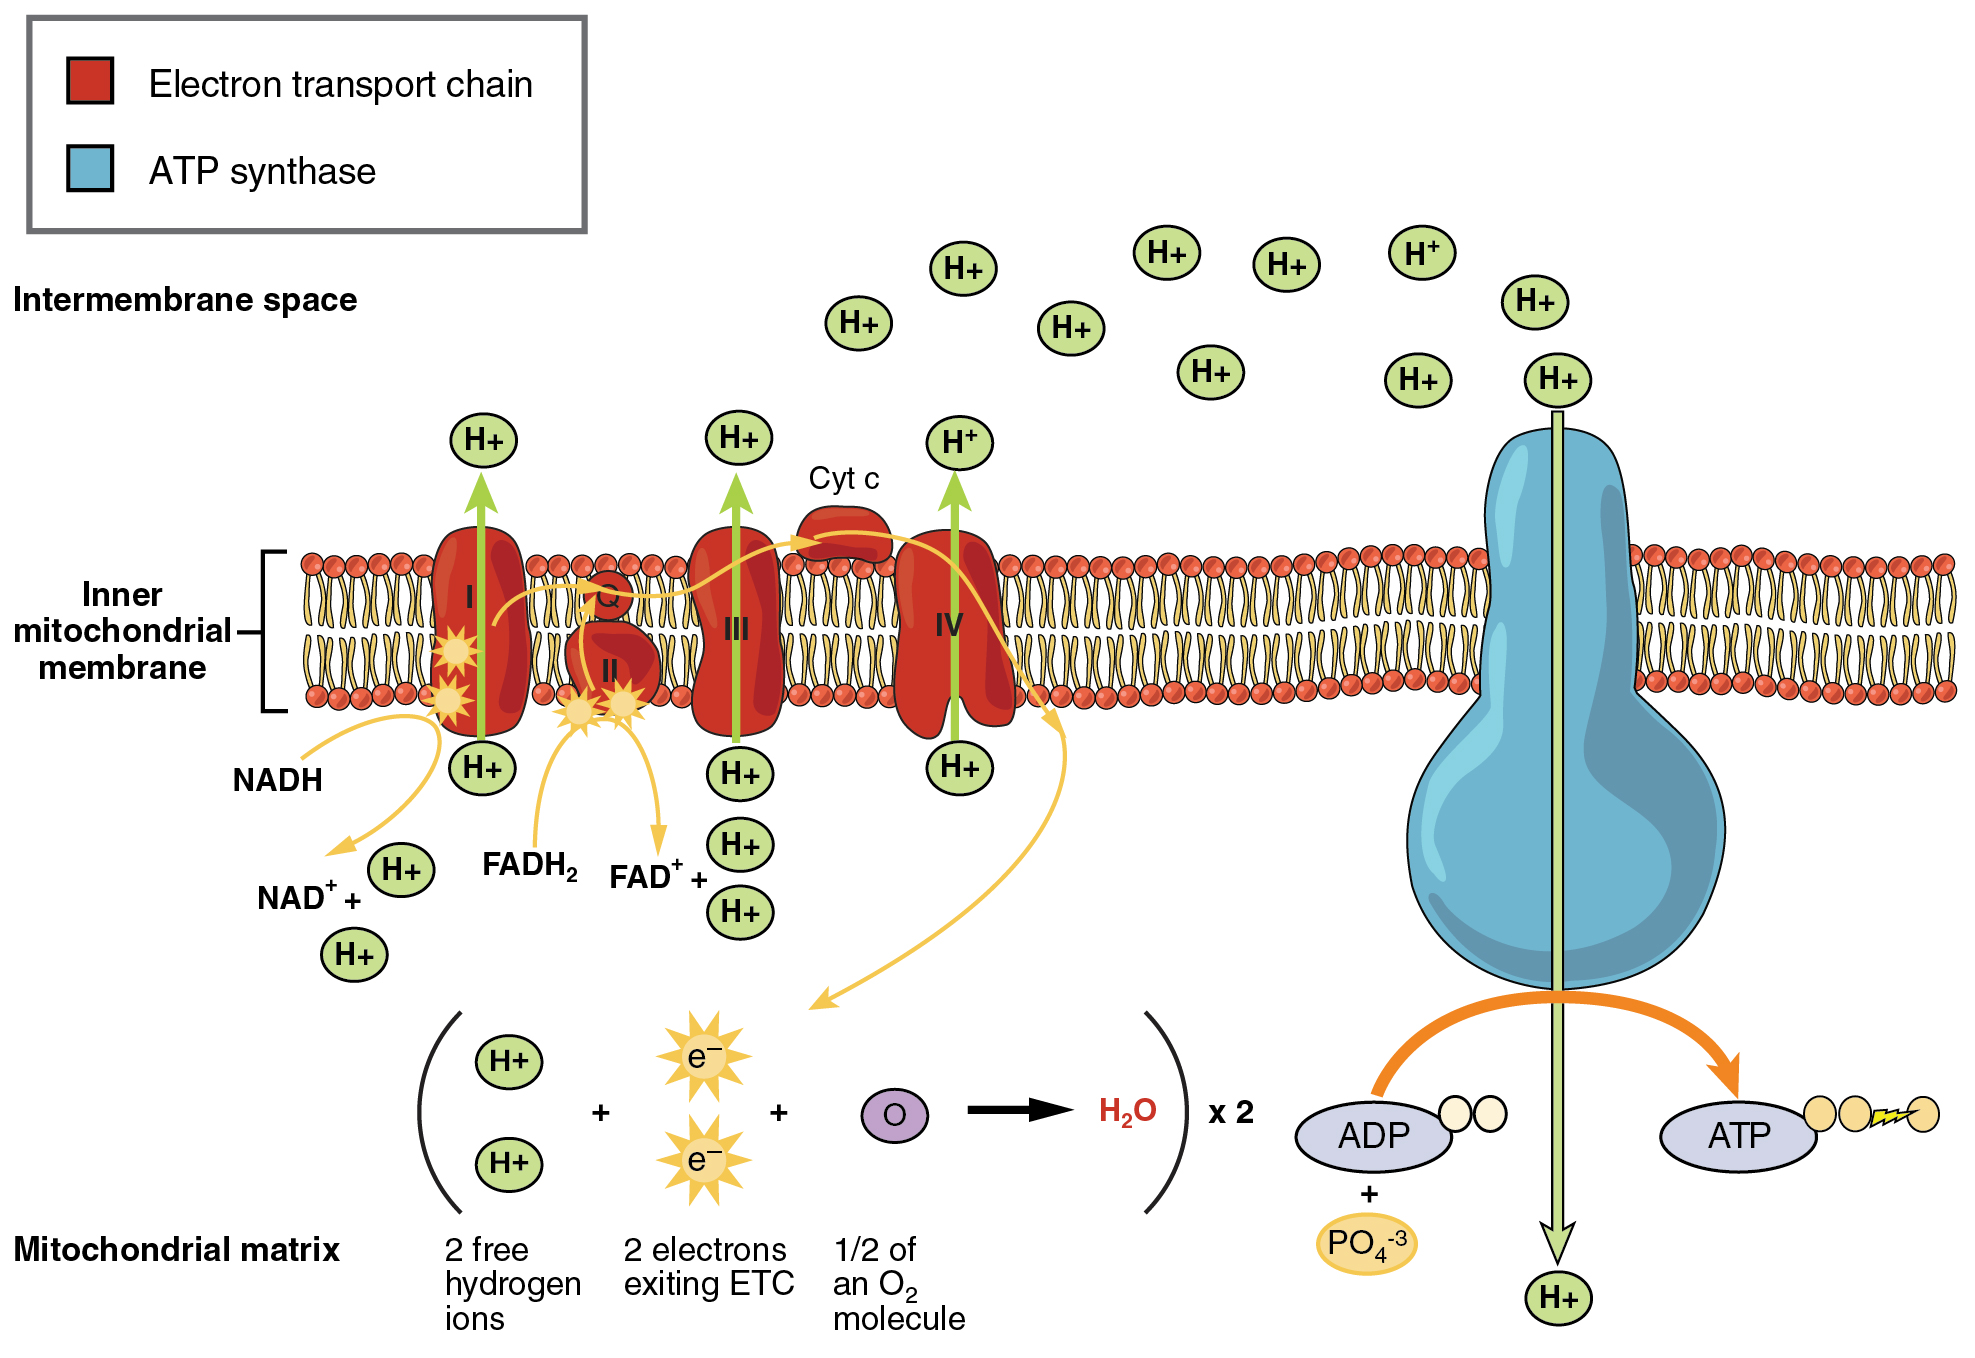 This image shows the mitochondrial membrane with proton pumps and ATP synthase embedded in the membrane. Arrows show the direction of flow of proteins and electrons across the membrane.